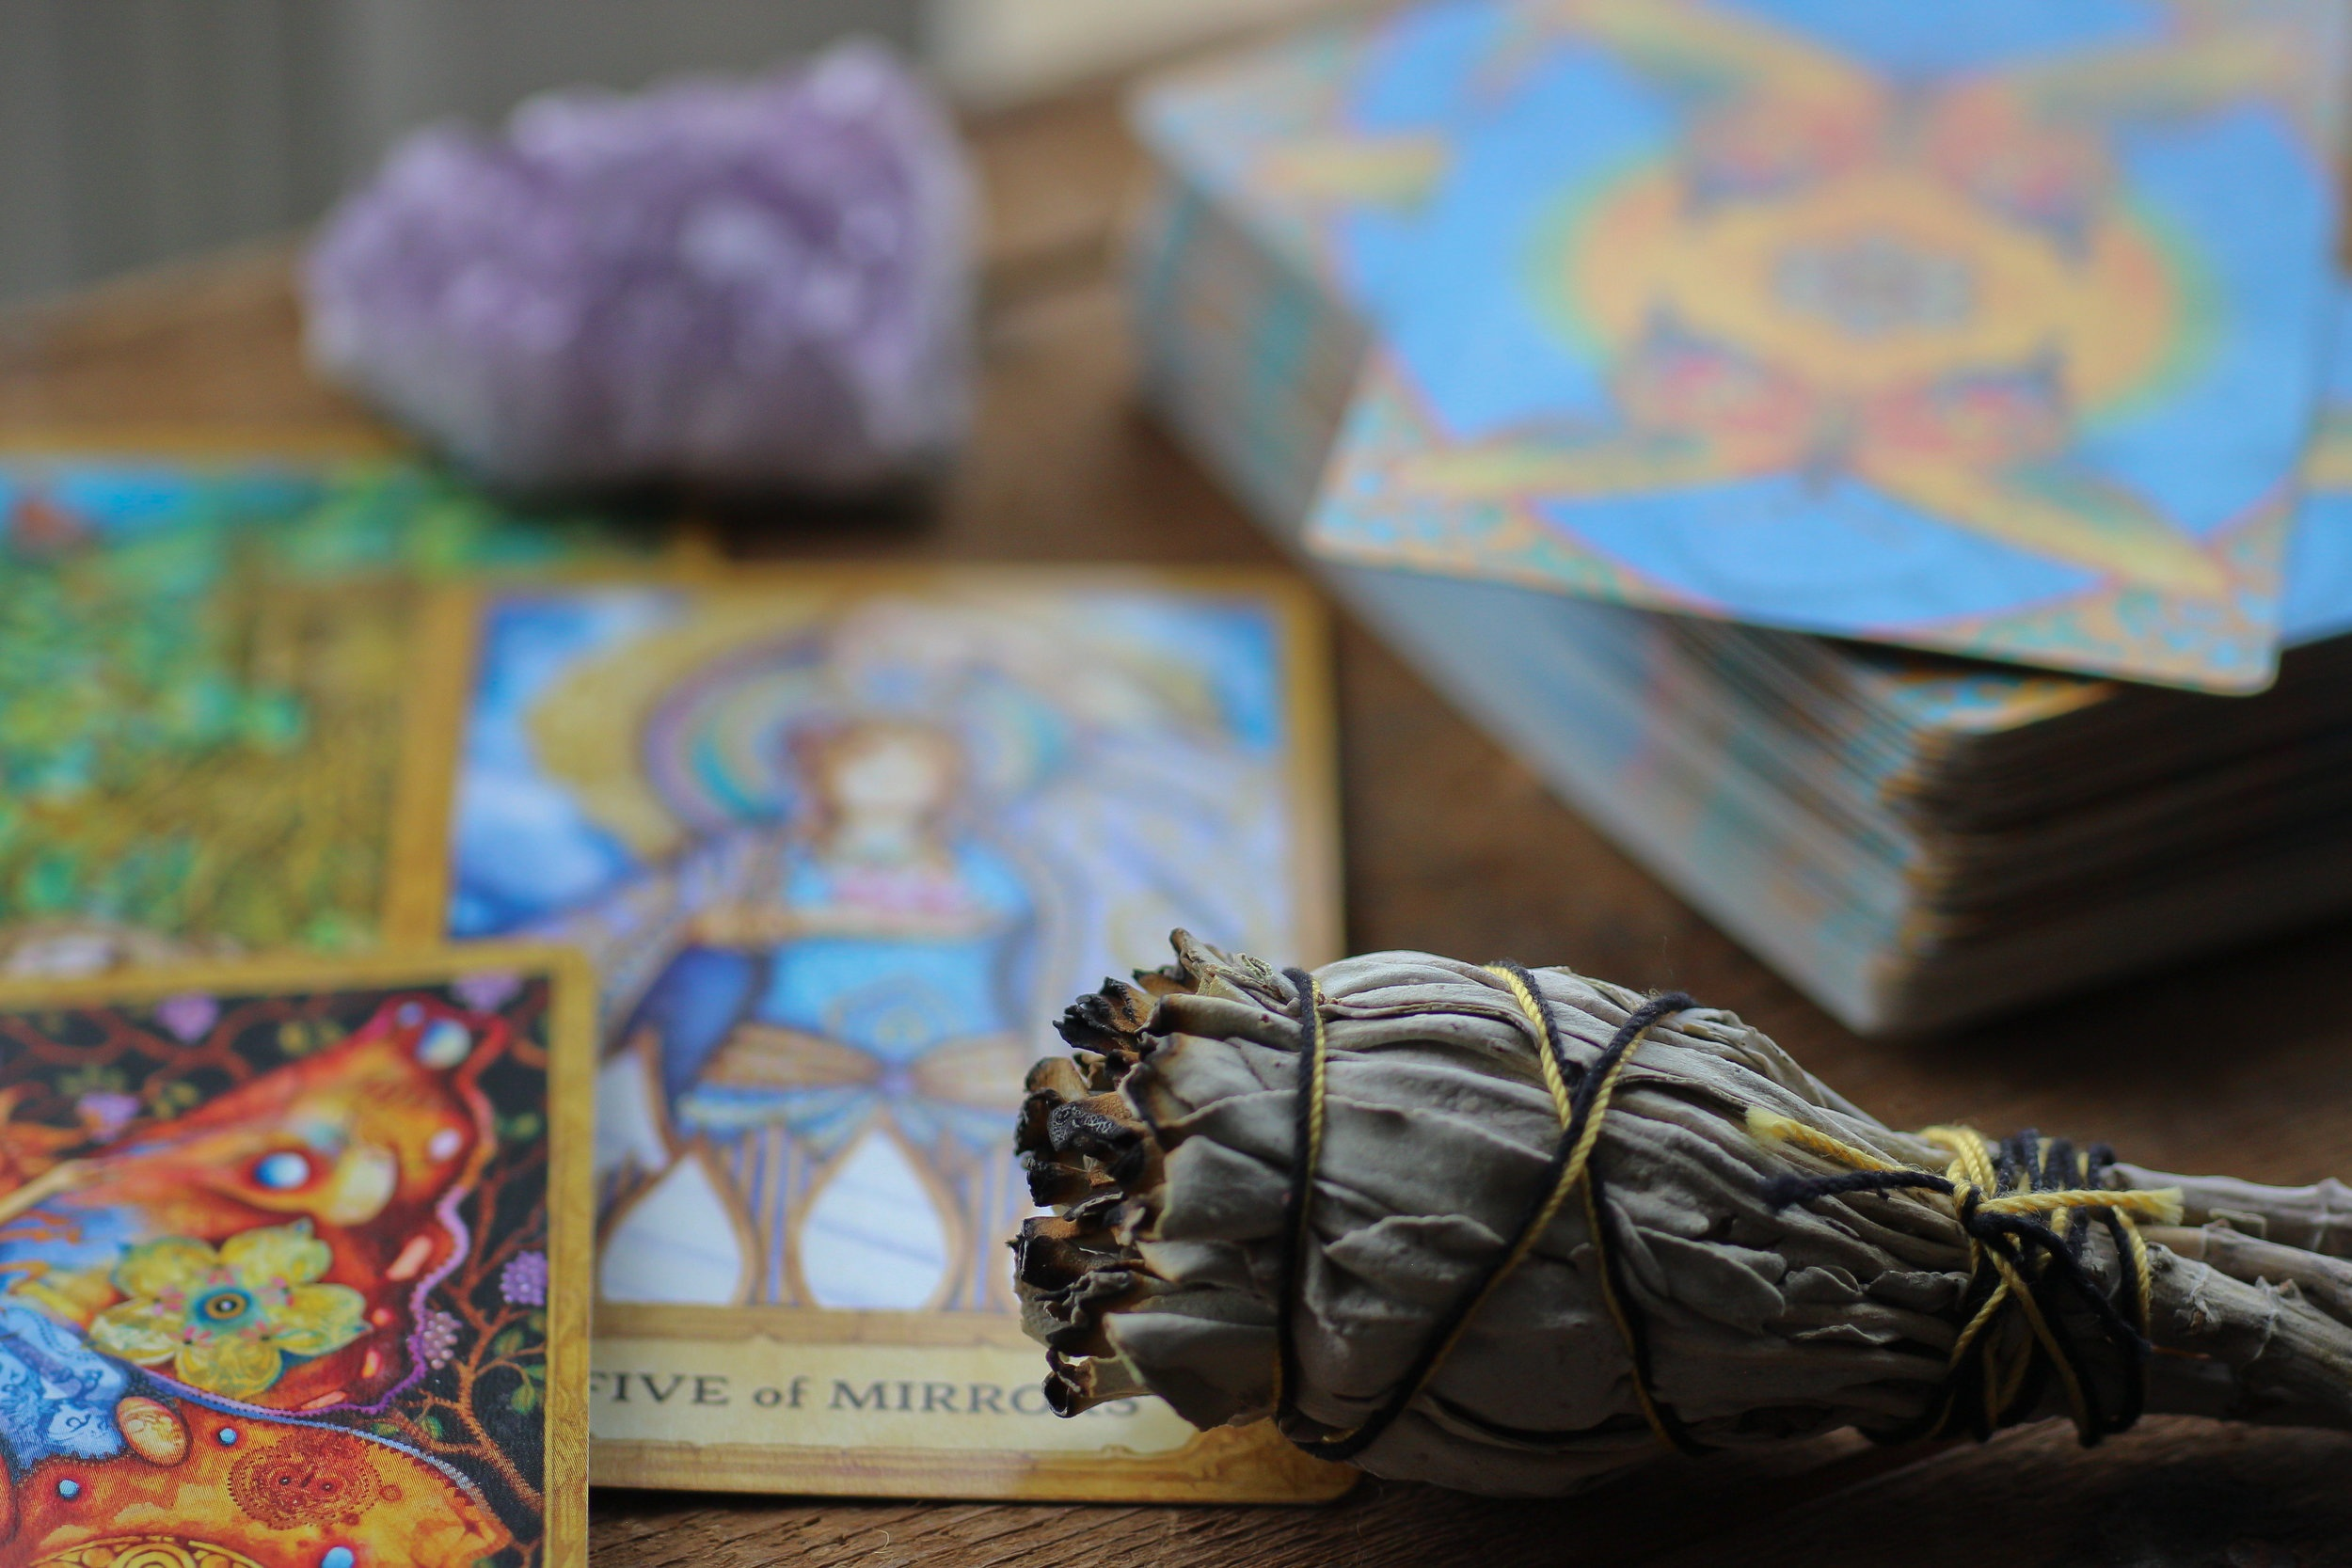 Tarot - The art of intuitive tarot can help you gain insight and clarity on the here and now